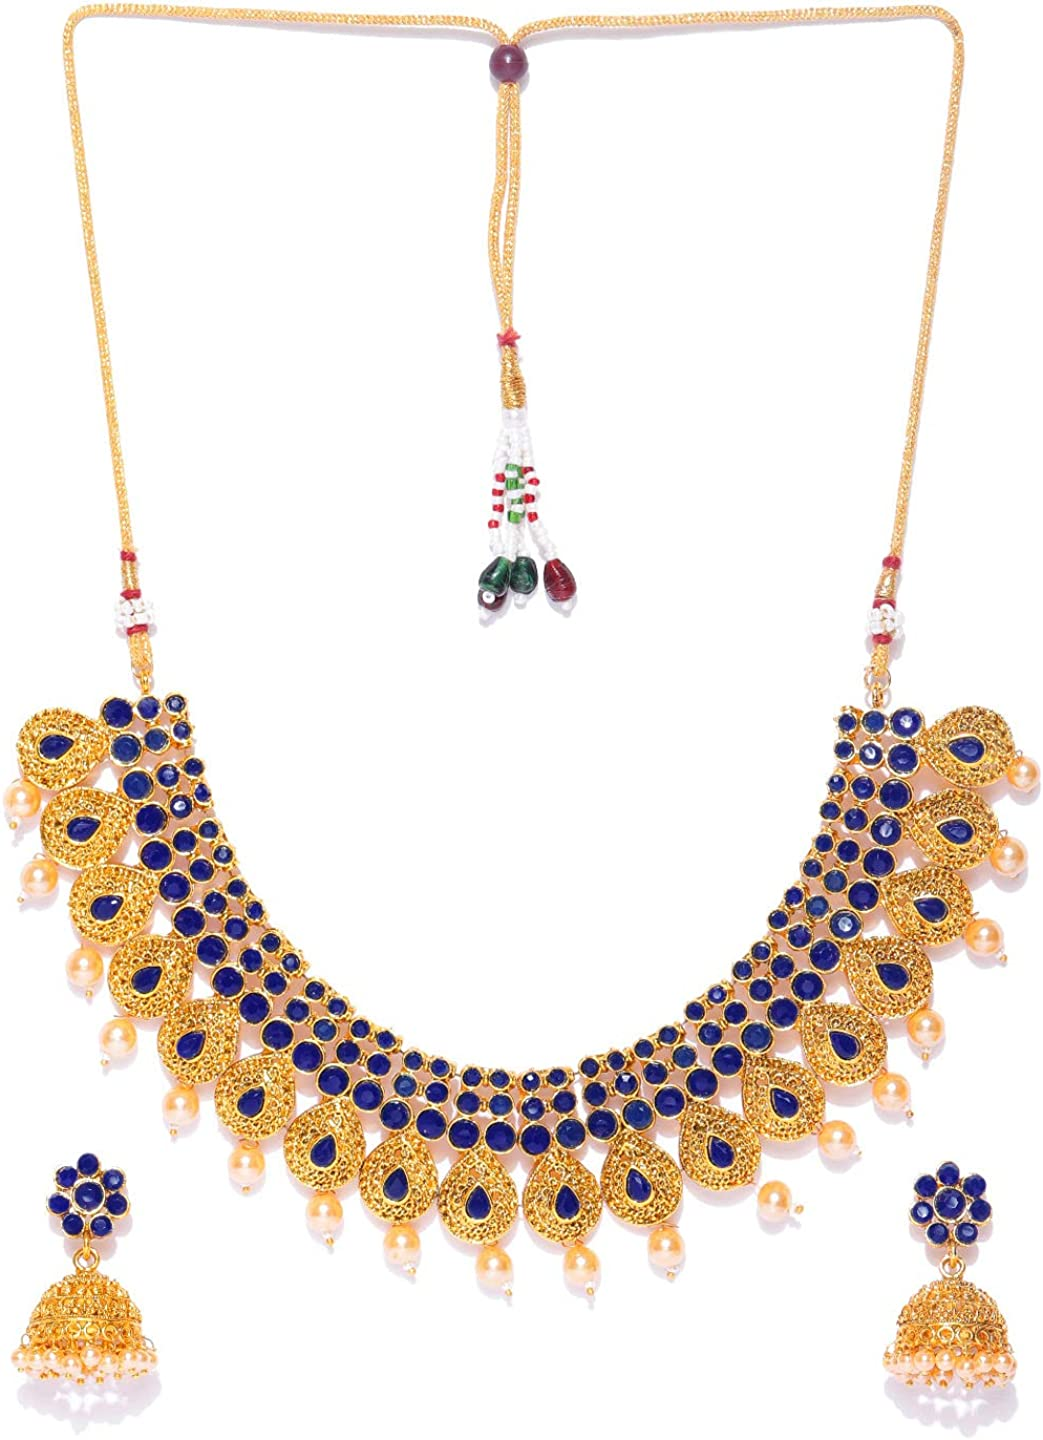 MANTH Navy Gold-Plated Stone-Studded Jewellery Set for Women and Girls